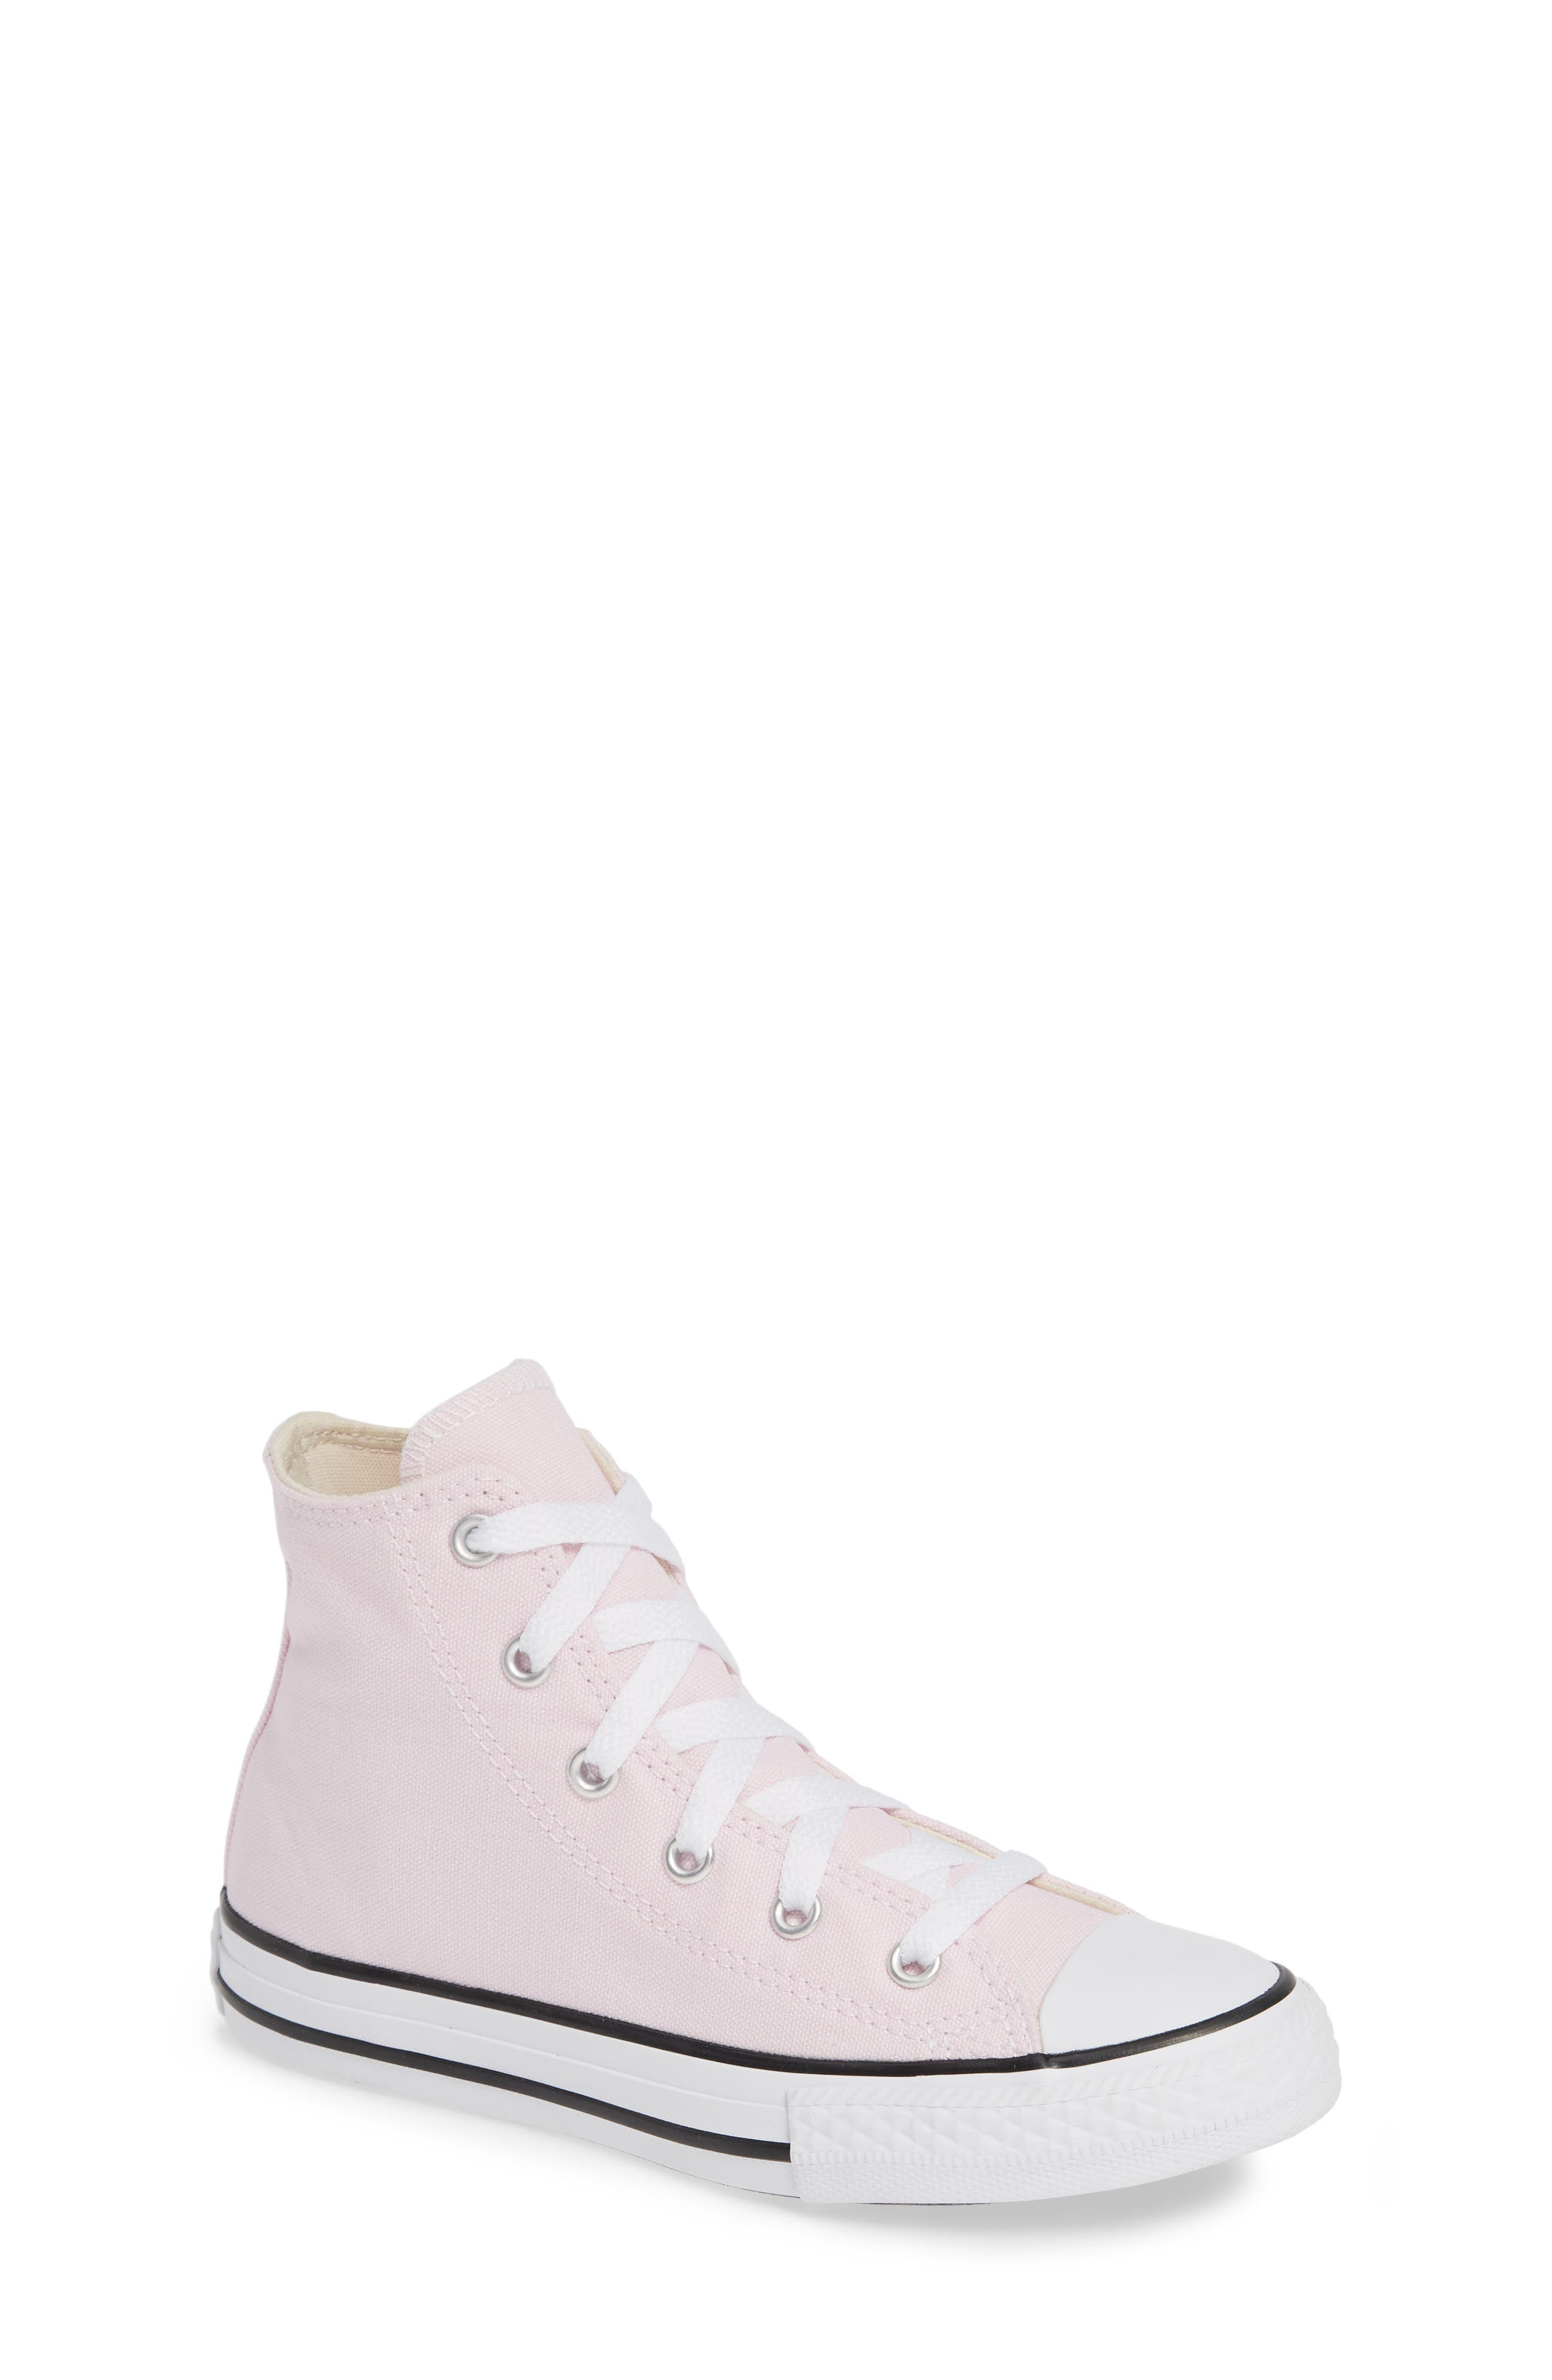 Chuck Taylor<sup>®</sup> High Top Sneaker, Main, color, PINK FOAM/ IVORY/ WHITE